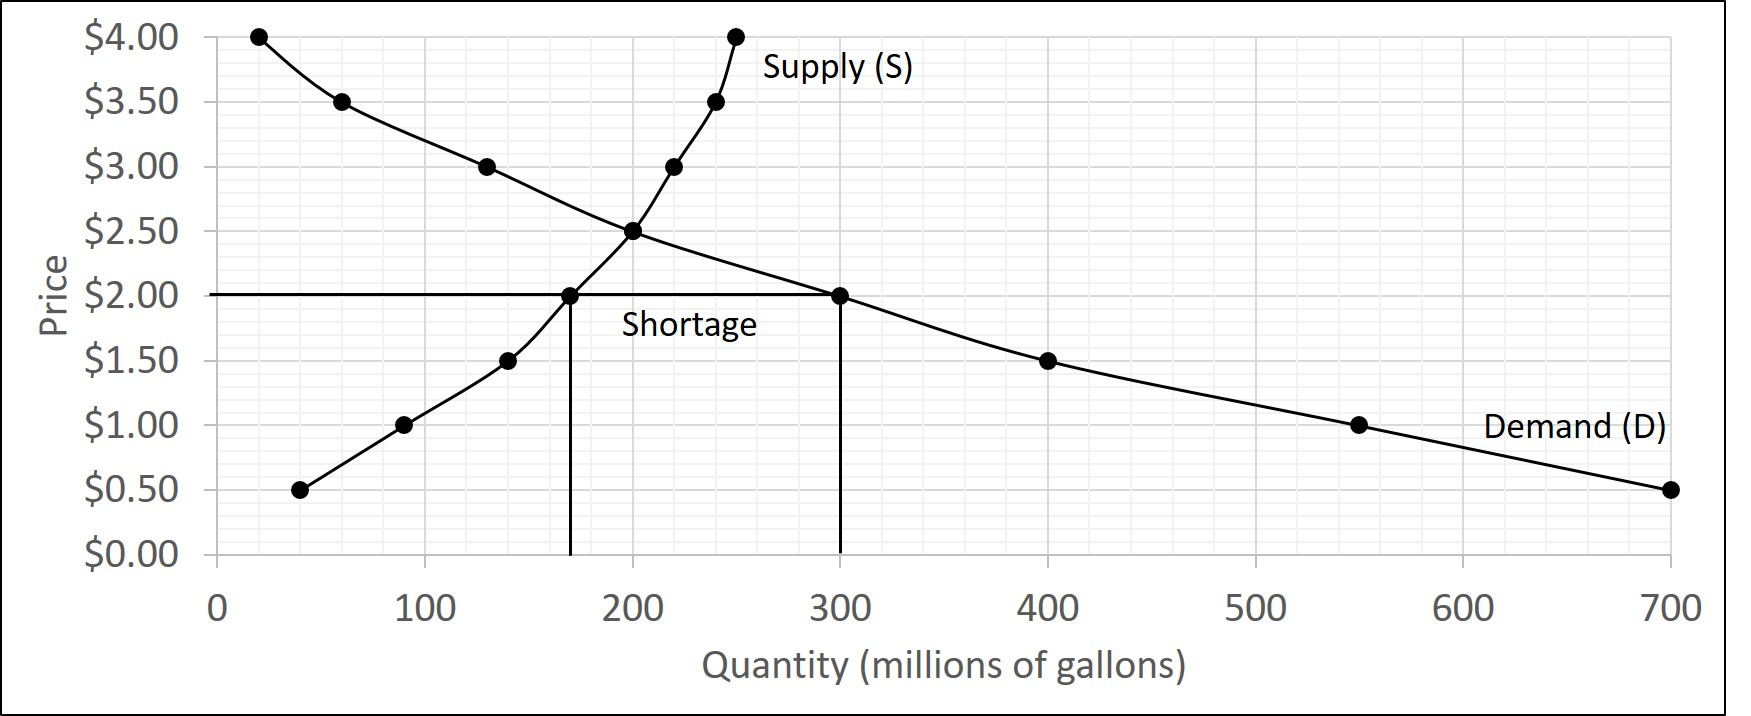 The graph has a supply and demand curve but the market price is set below the equilibrium price. This causes the quantity demanded to be greater than the quantity supplied creating a shortage.